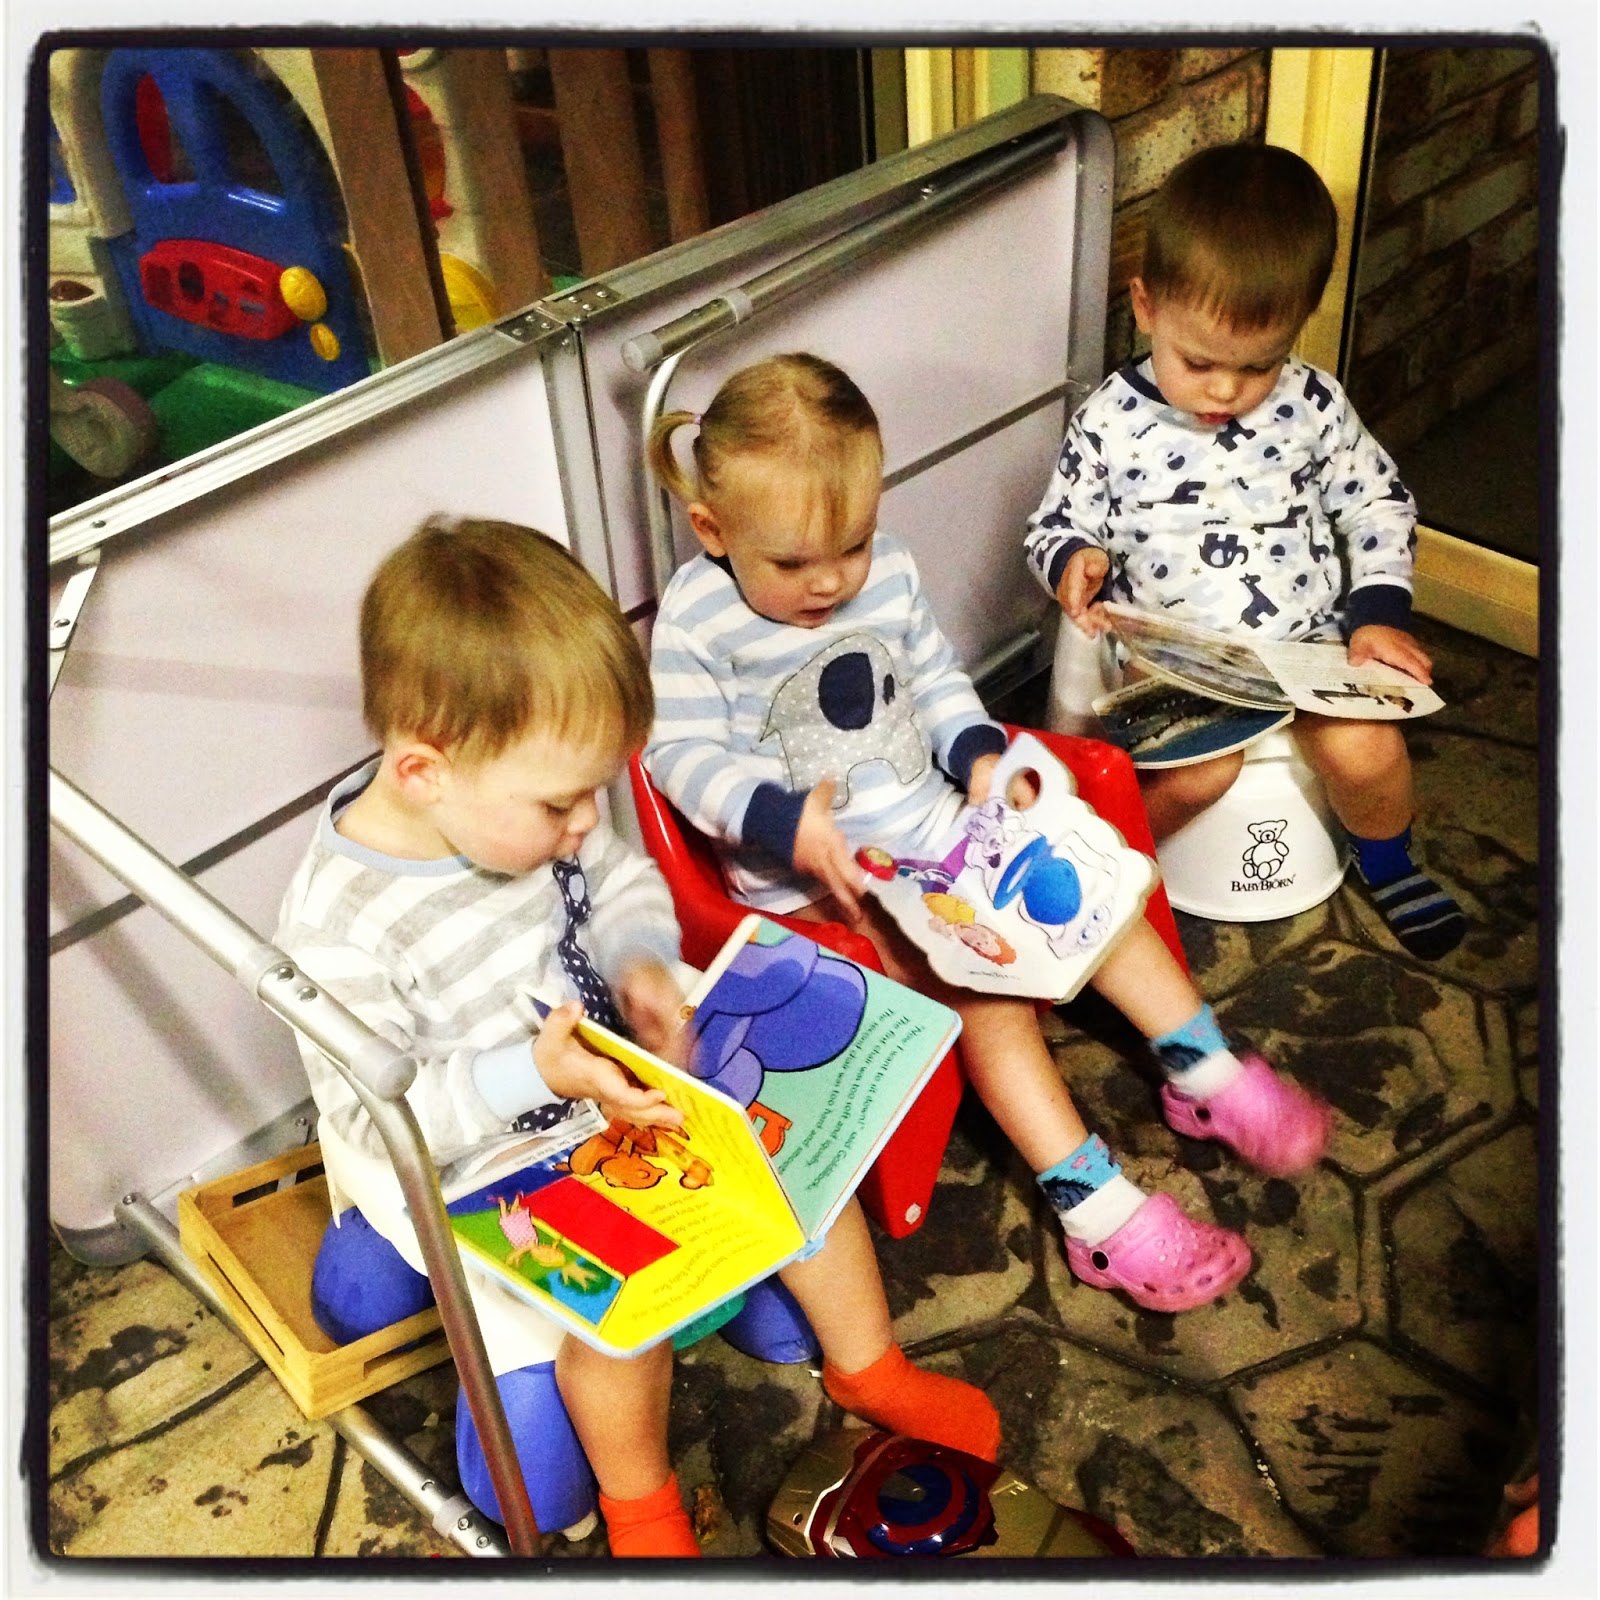 Triplets sitting on potty